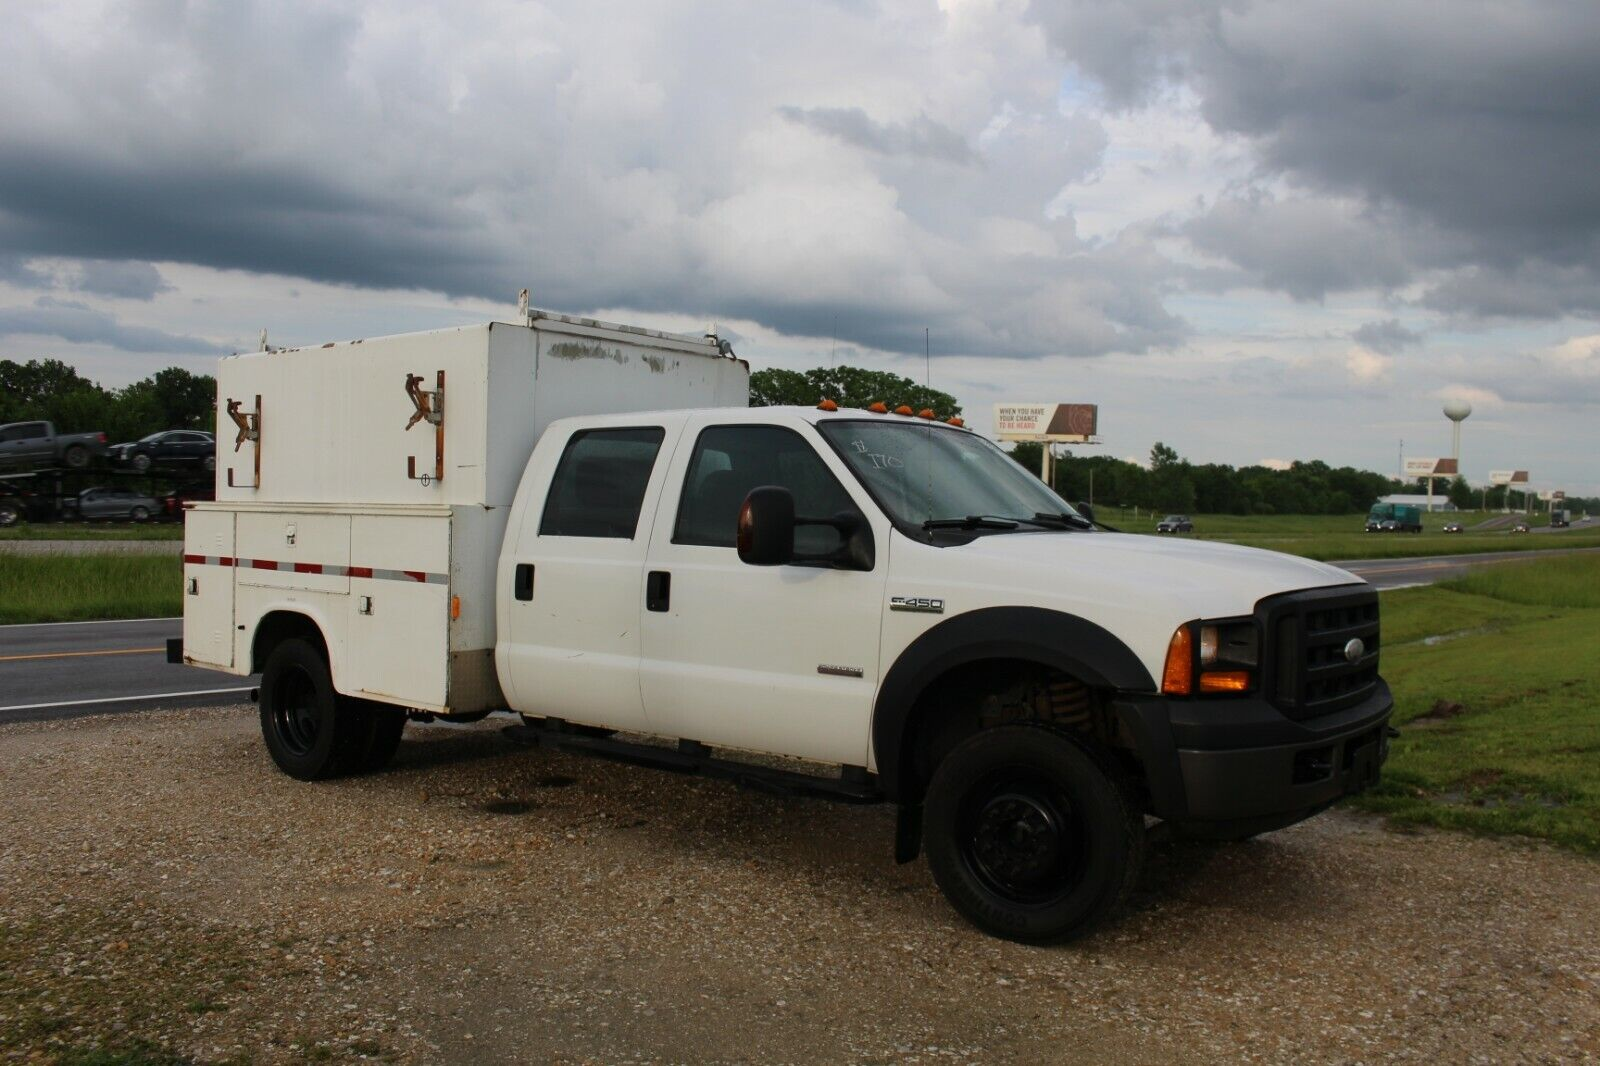 2006 Ford F-450 4x4 Crew Cab Service Utility Truck KUV Powerstroke Diesel Used